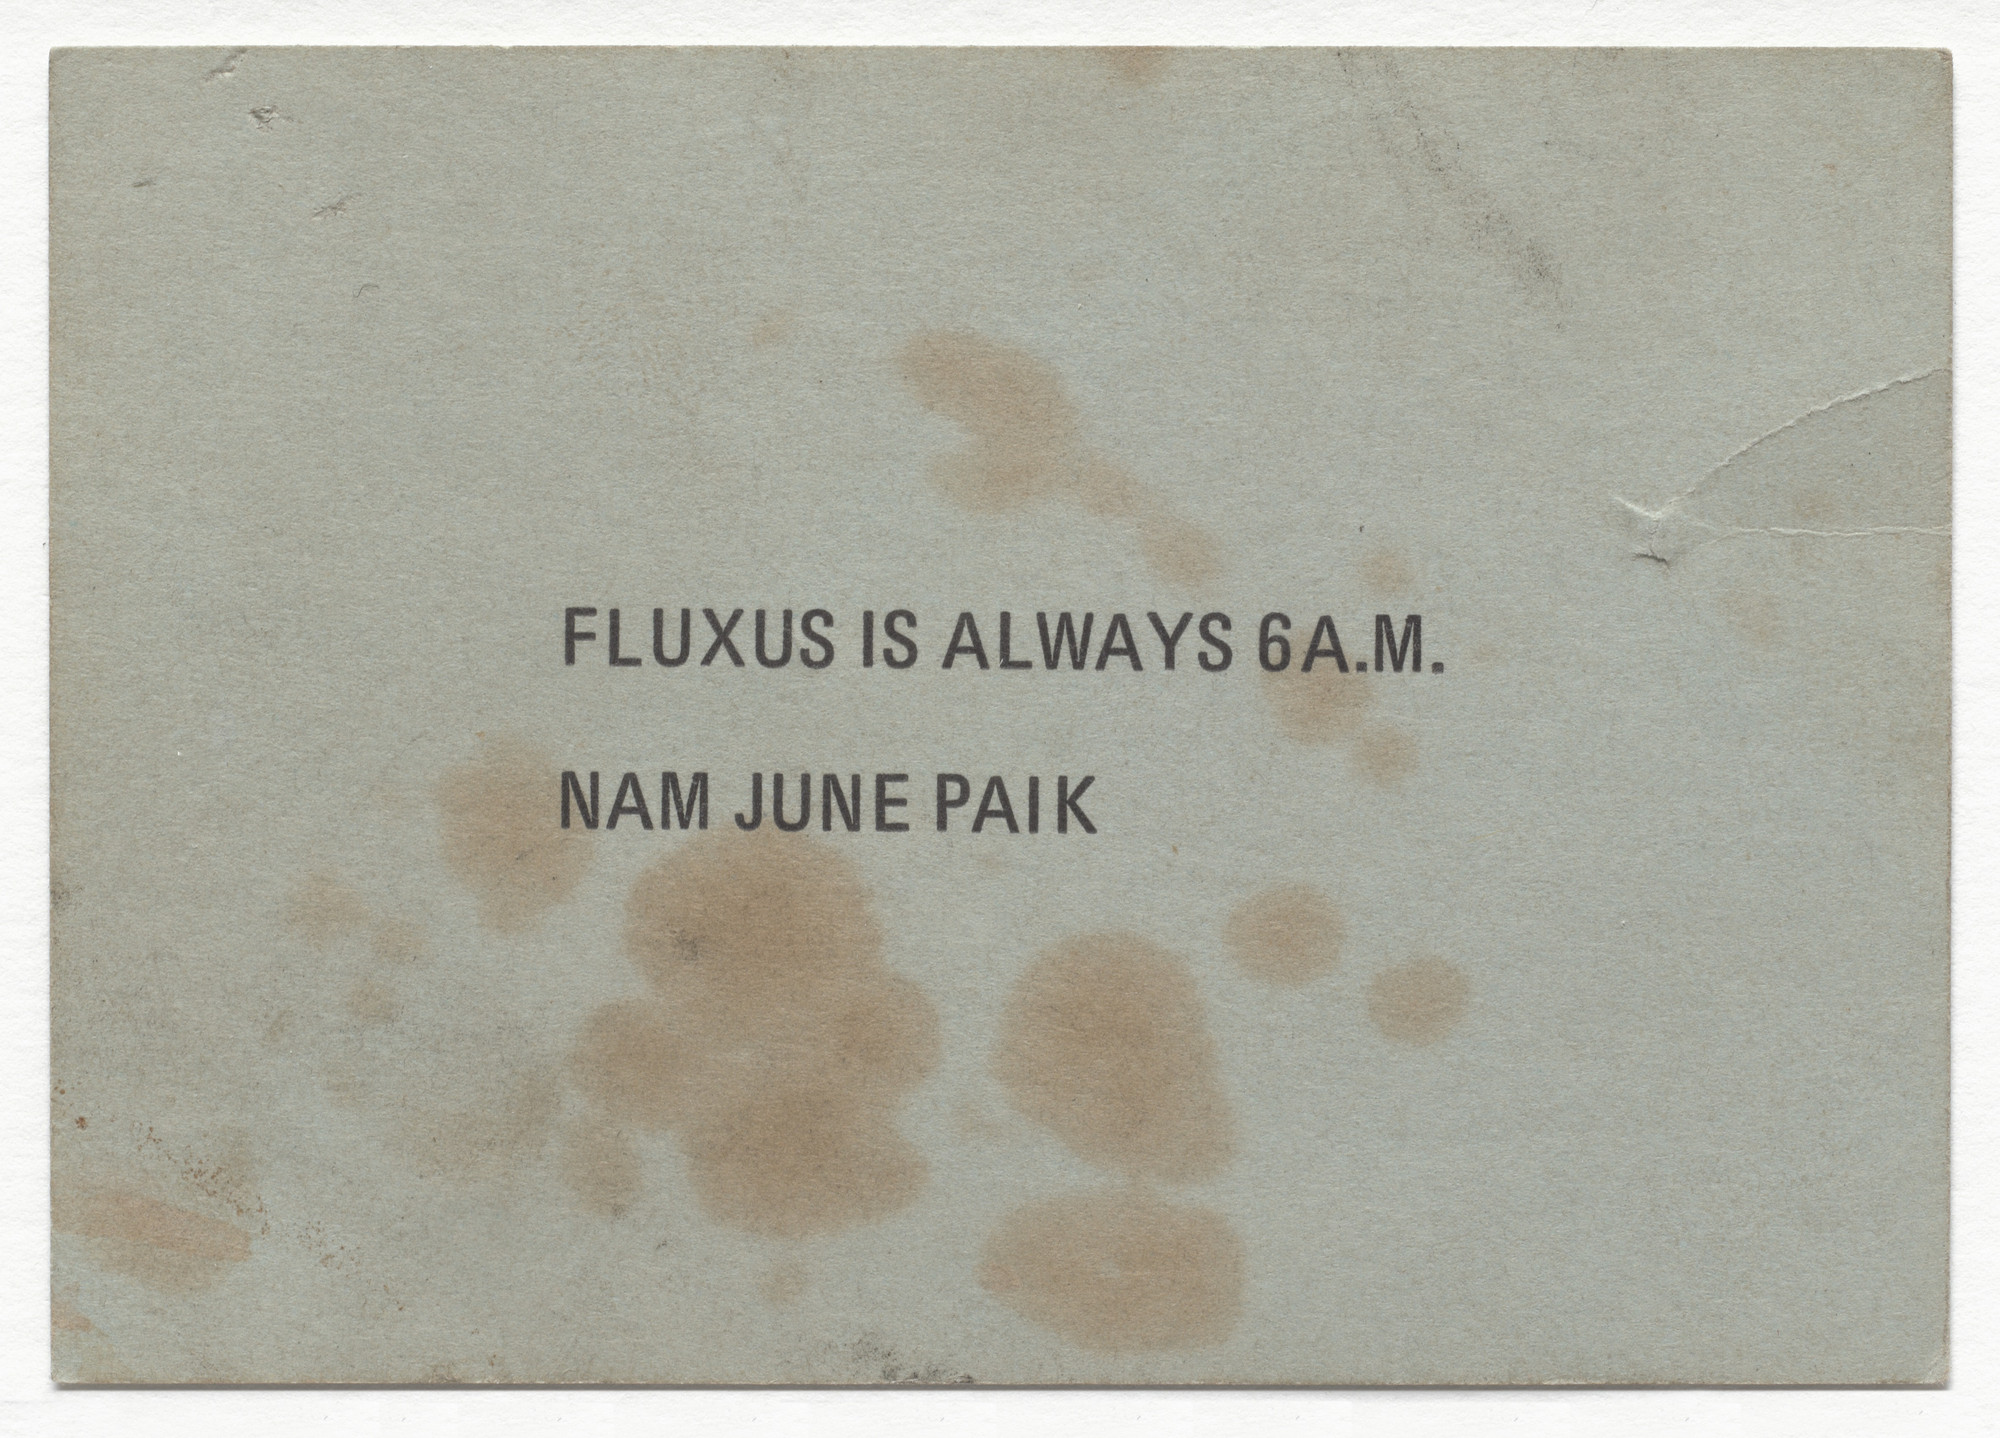 Nam June Paik. Fluxus is always 6 a.m.. 1976